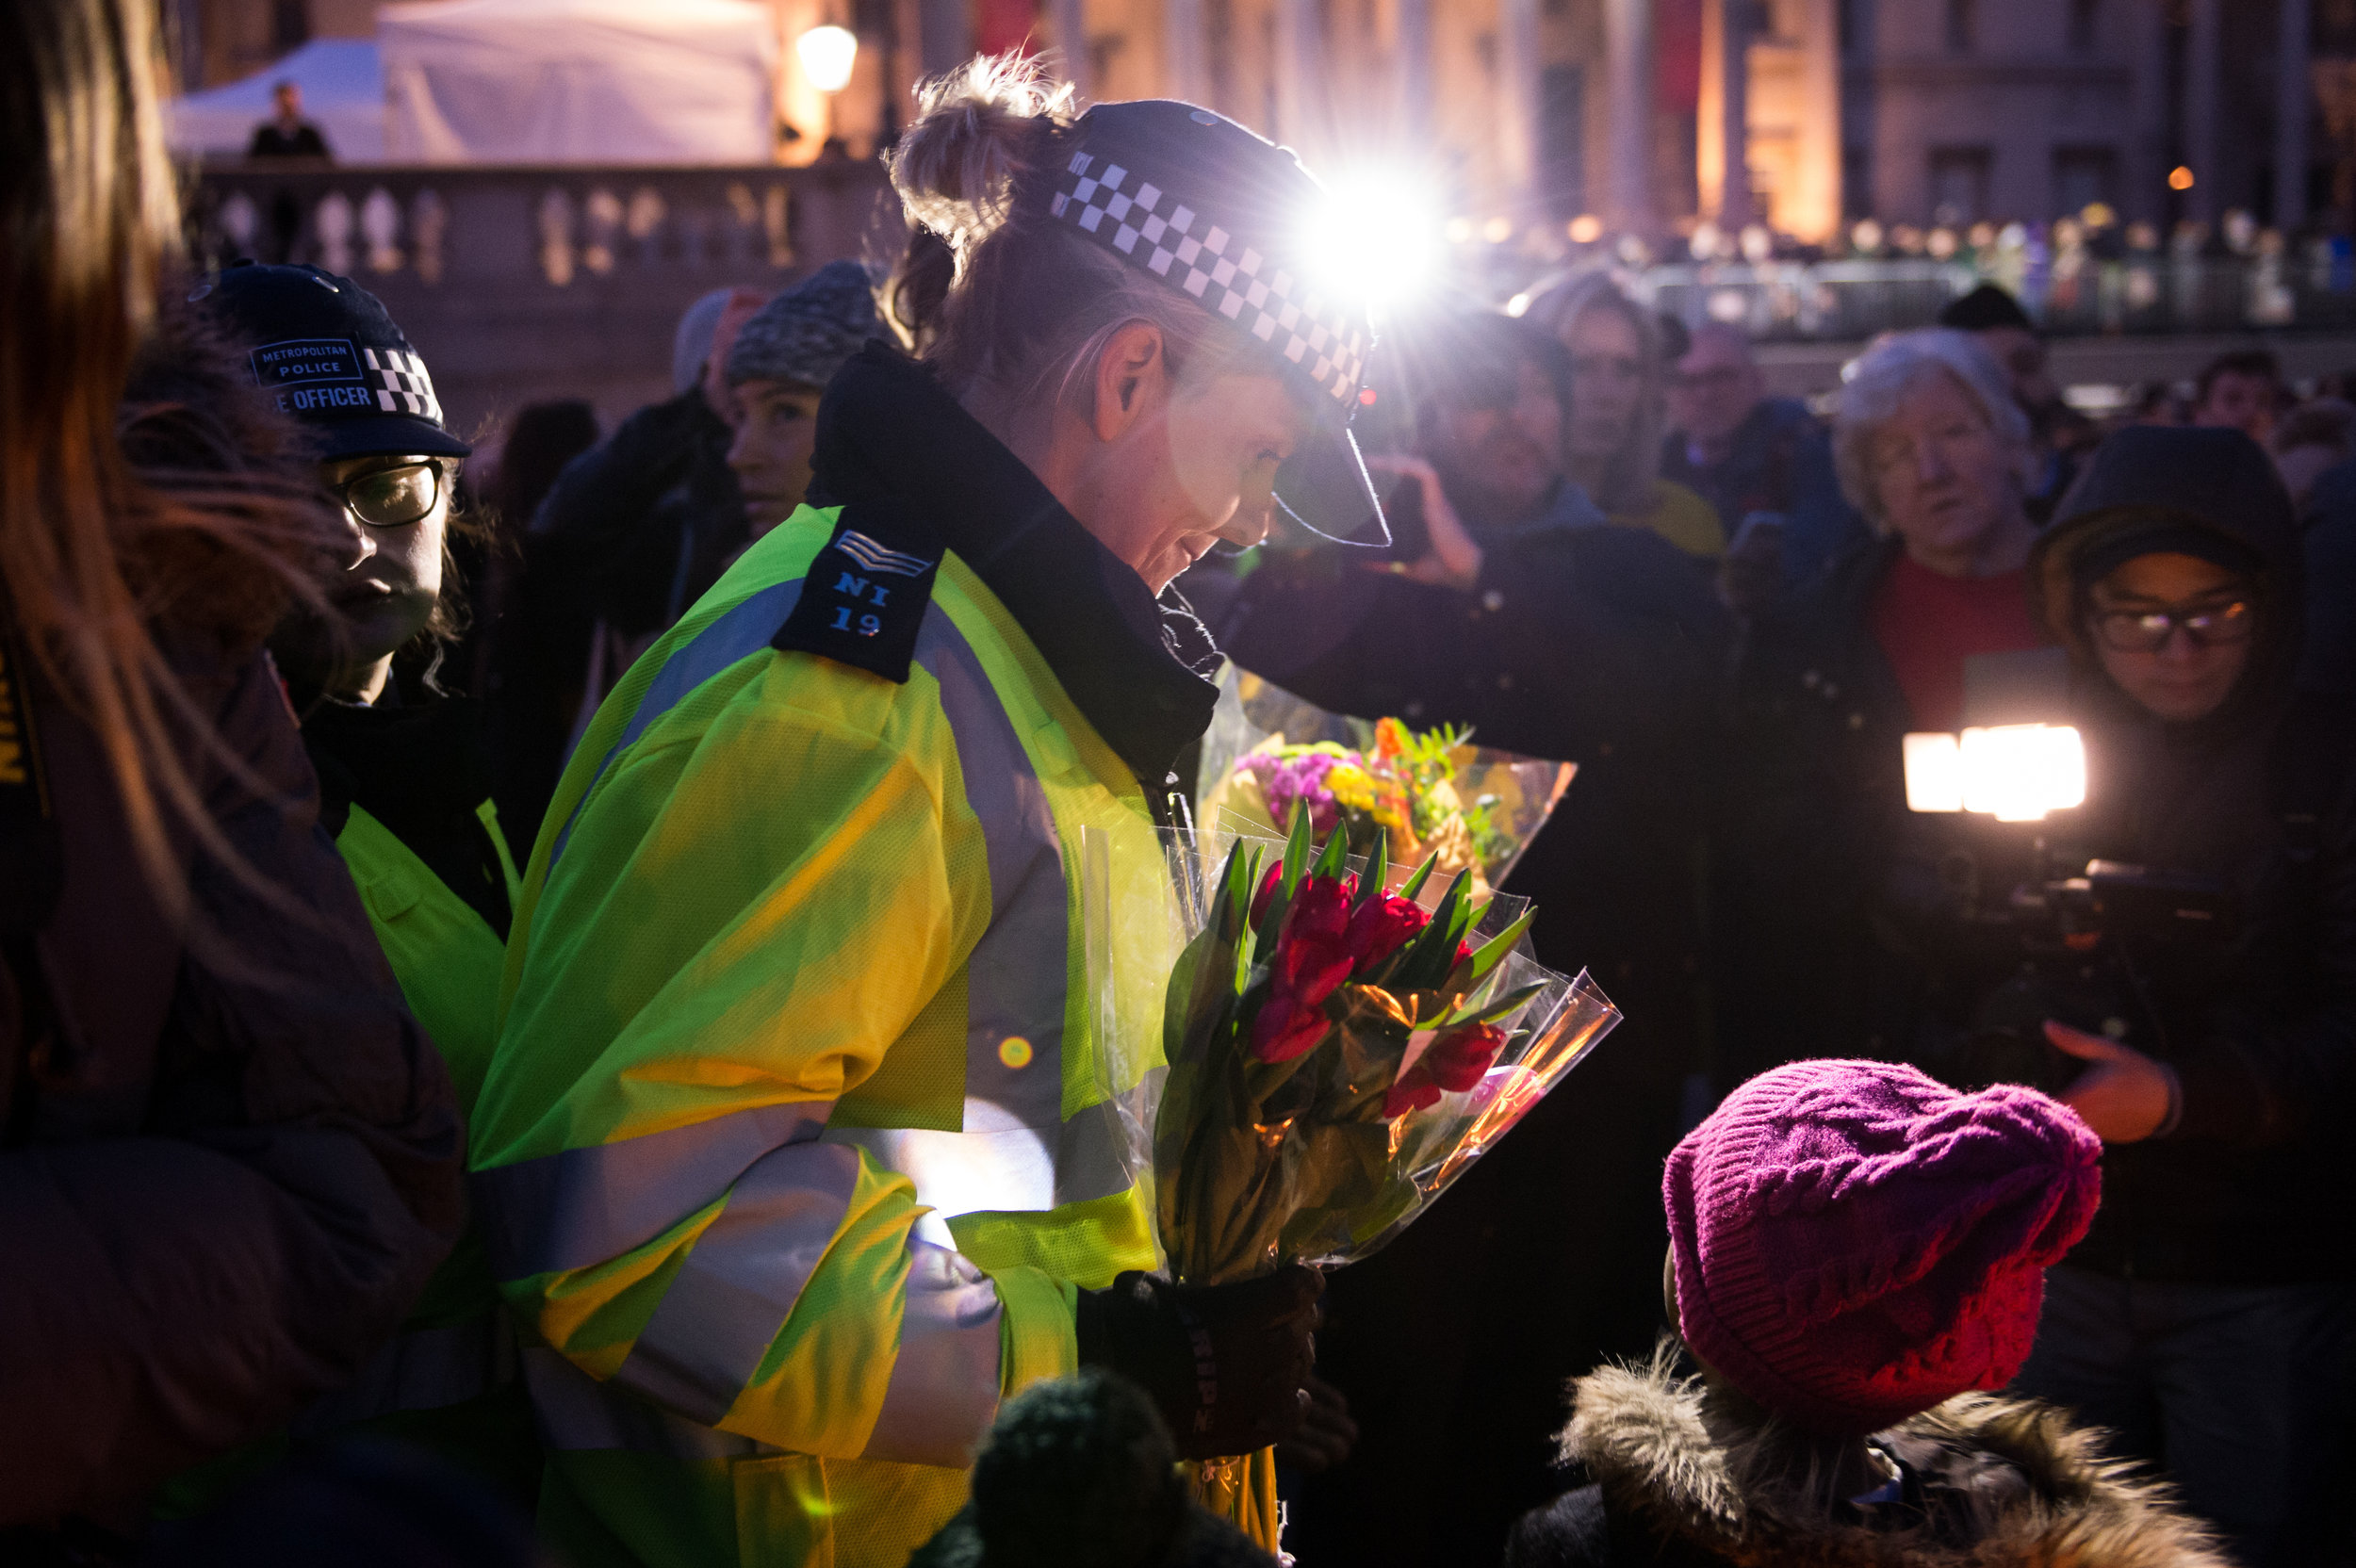 A police officer lays a floral tribute.